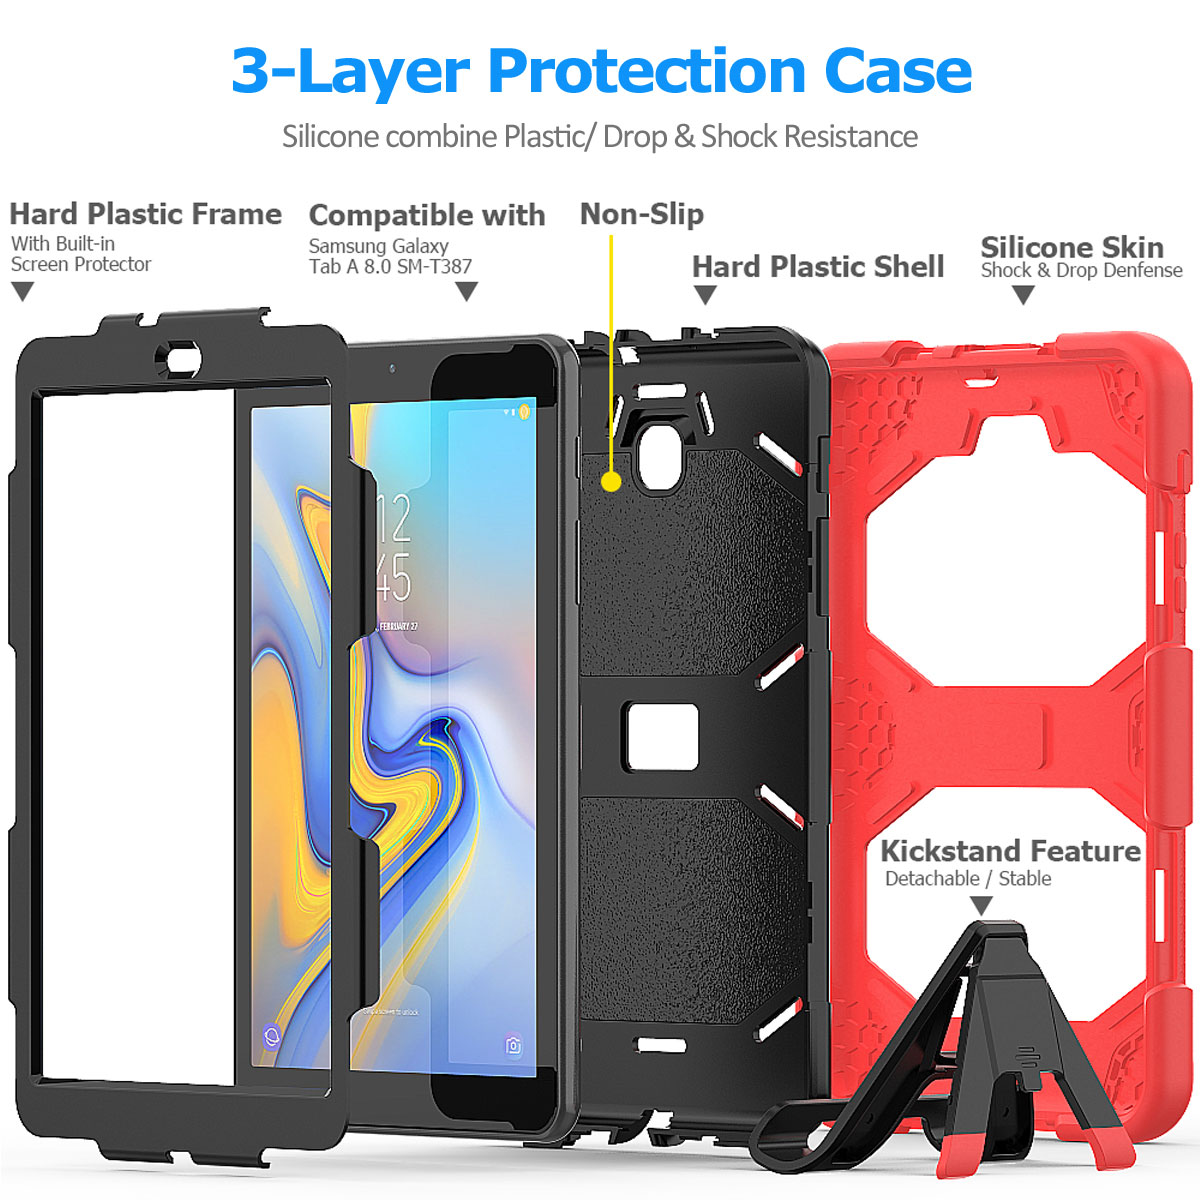 Rugged-Hard-Case-For-Samsung-Galaxy-Tab-A-8-0-2018-SM-T387-with-Screen-Protector thumbnail 63